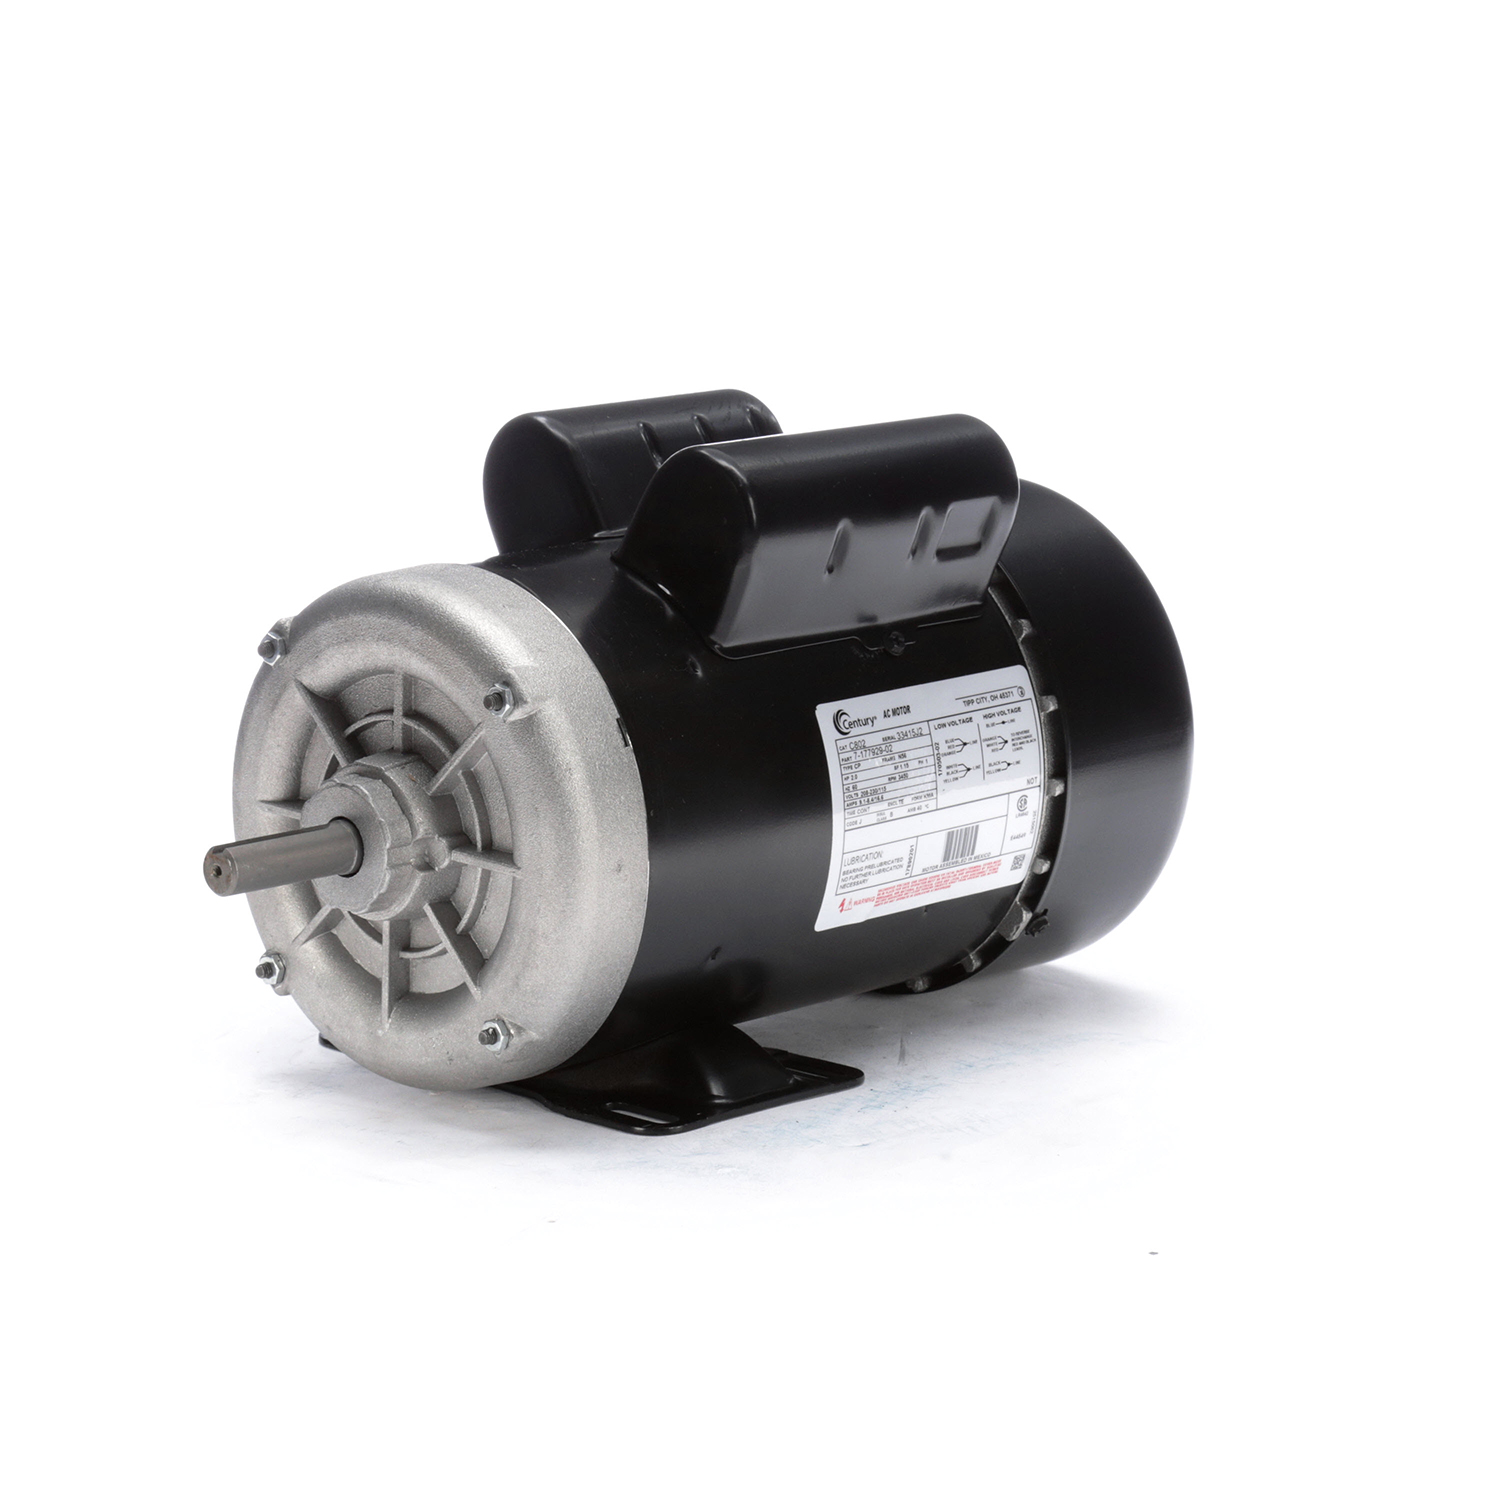 2.0 HP, 208-230/115 V, Single Phase